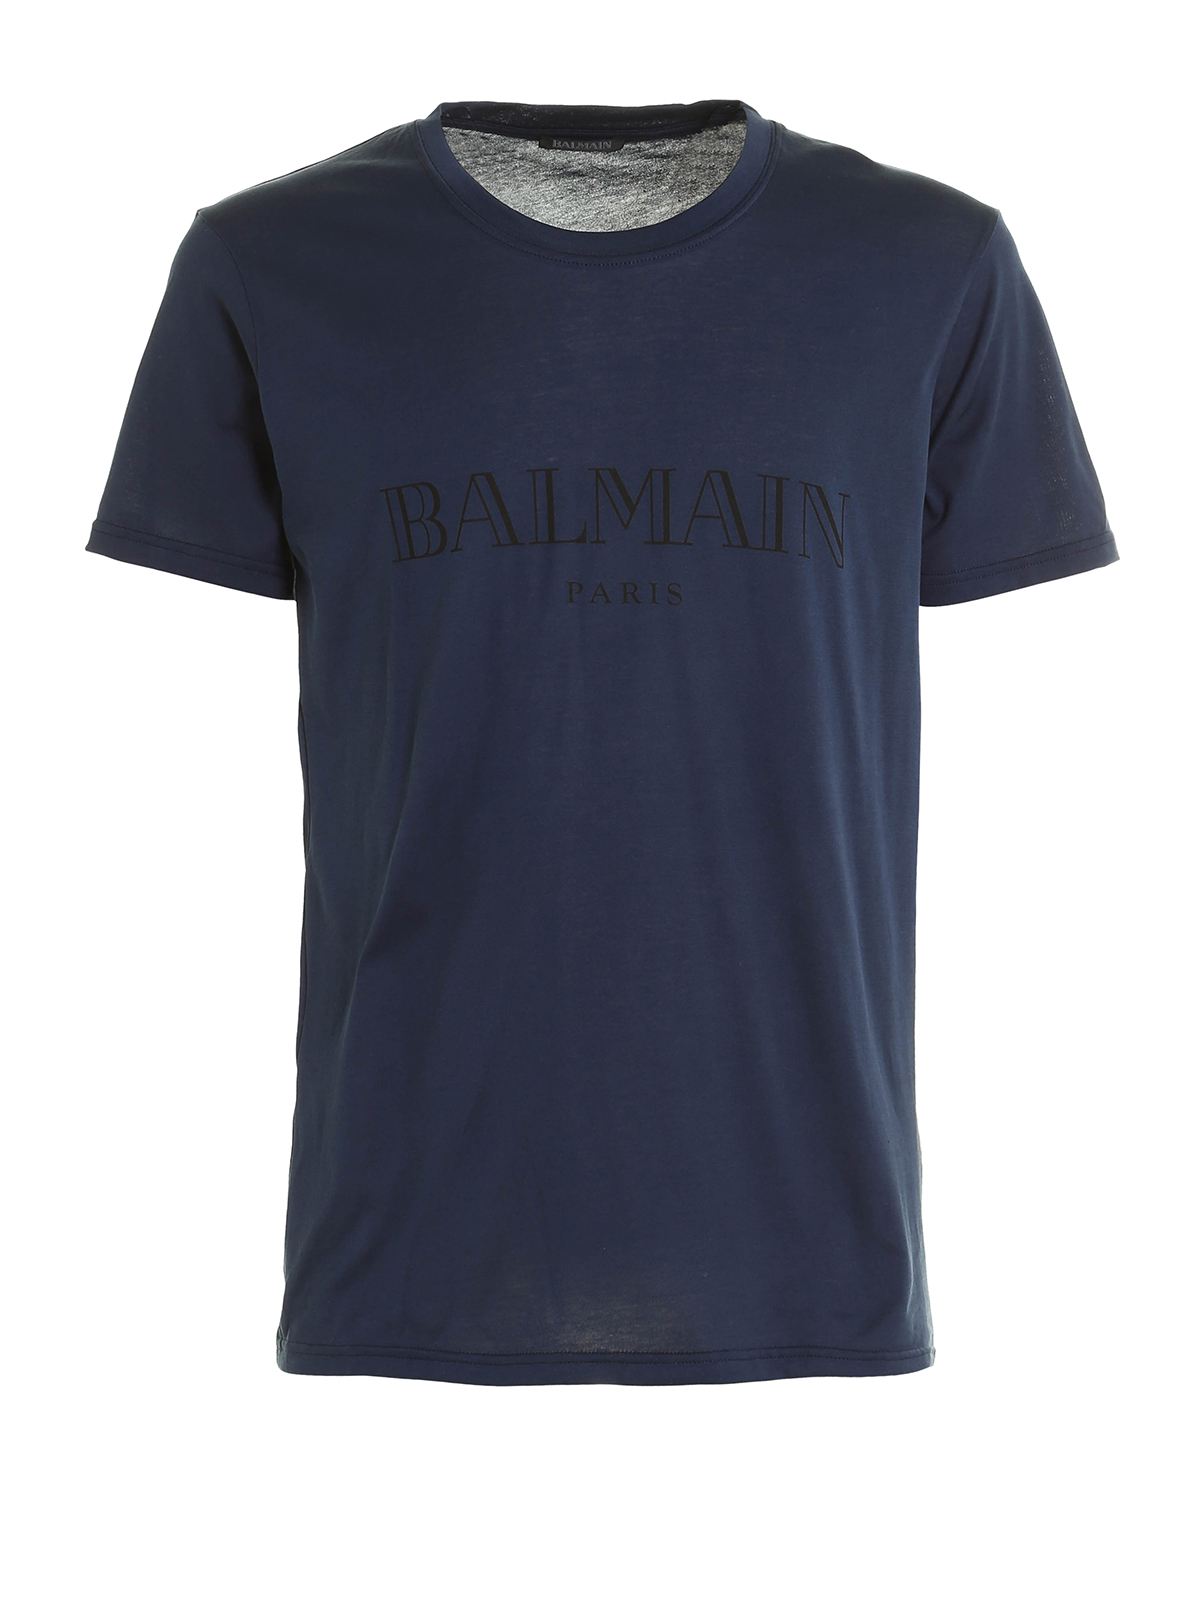 logo print short sleeve tee by balmain t shirts ikrix. Black Bedroom Furniture Sets. Home Design Ideas